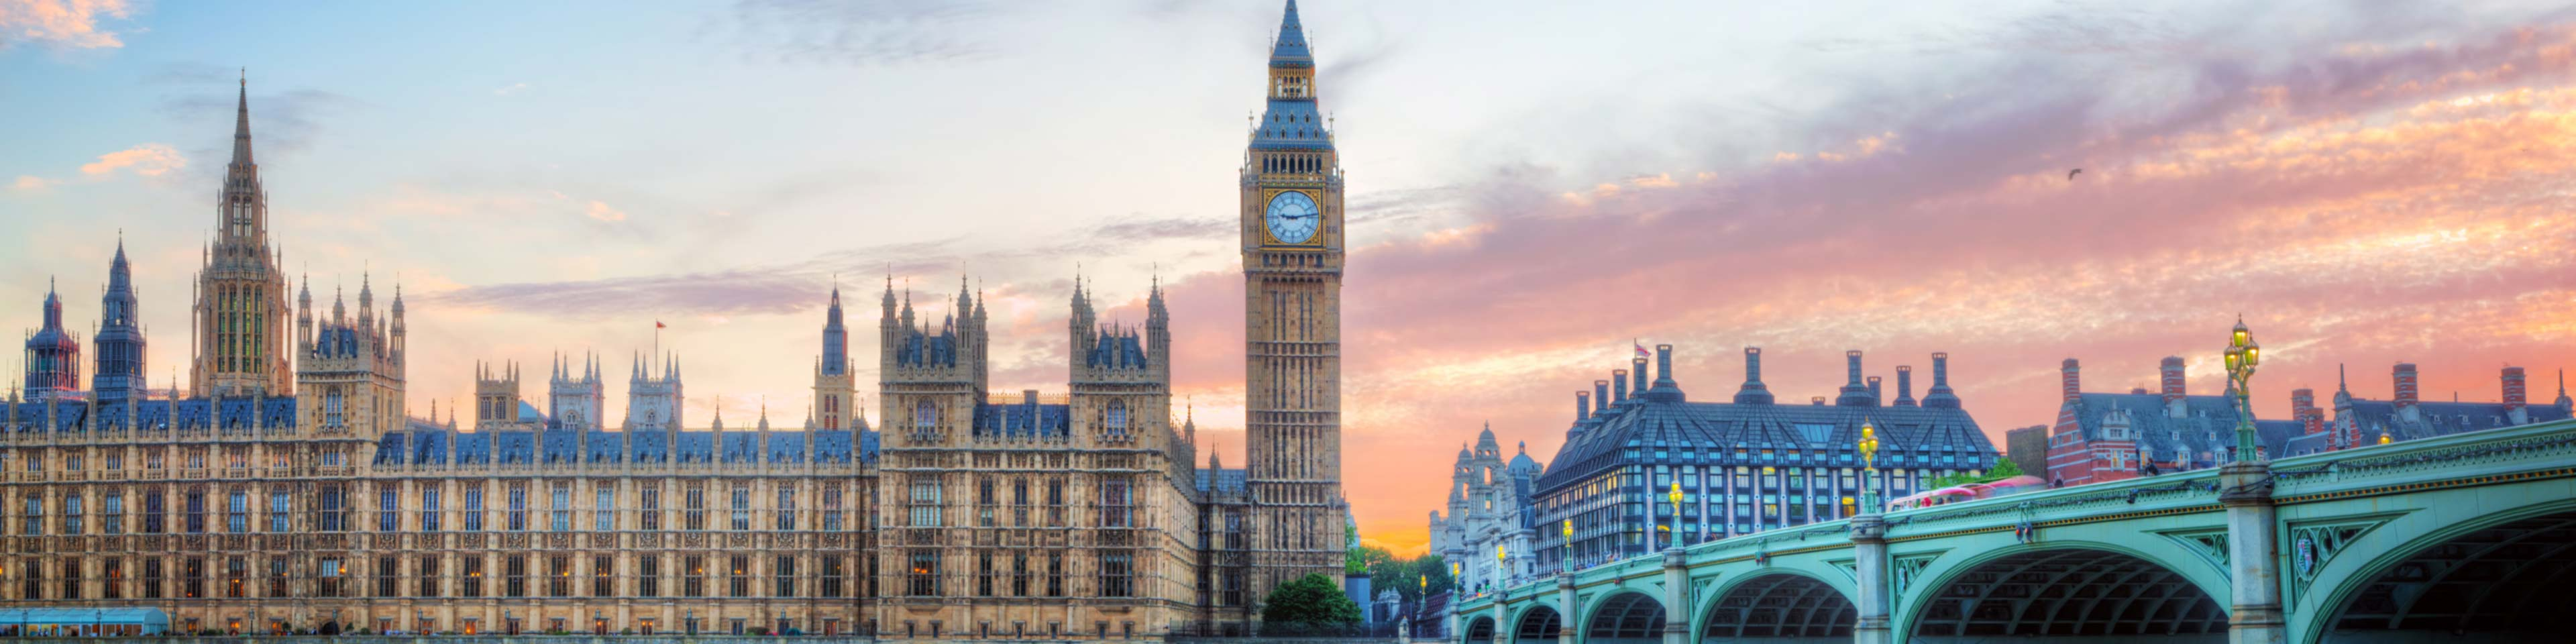 Understanding the proposed changes to the UK's corporate transparency policy